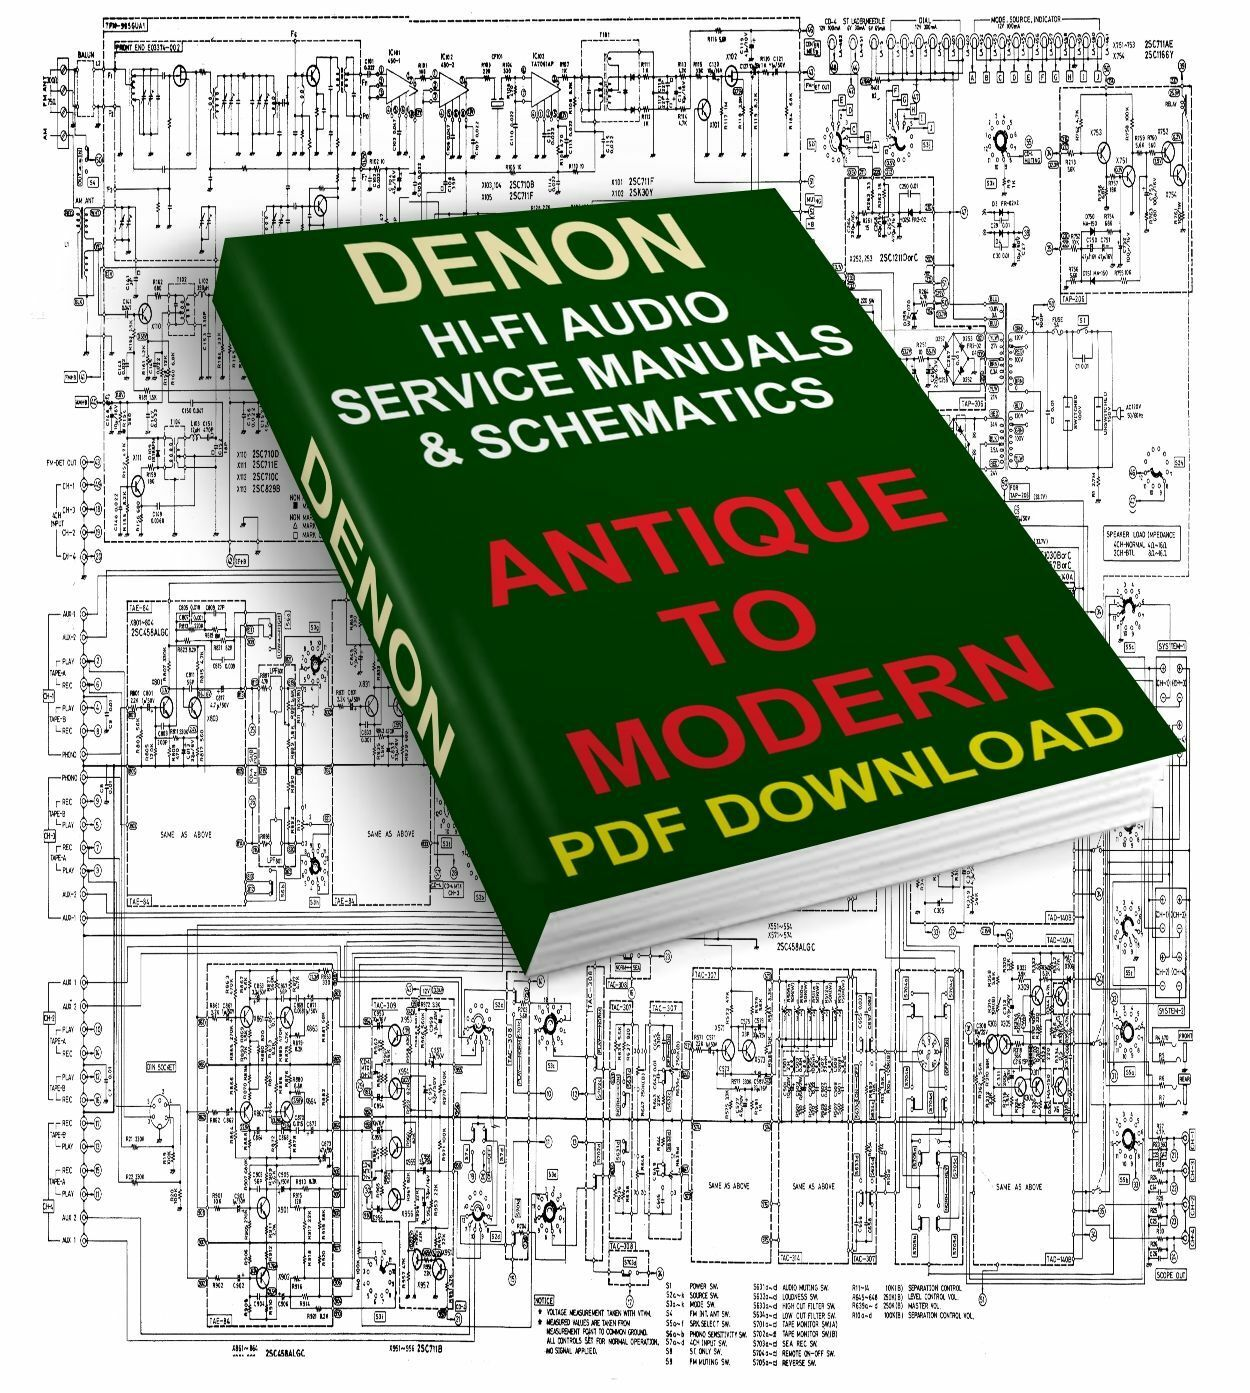 Denon Service Manuals & Schematics Antique To Modern Download 1 of 1FREE  Shipping ...